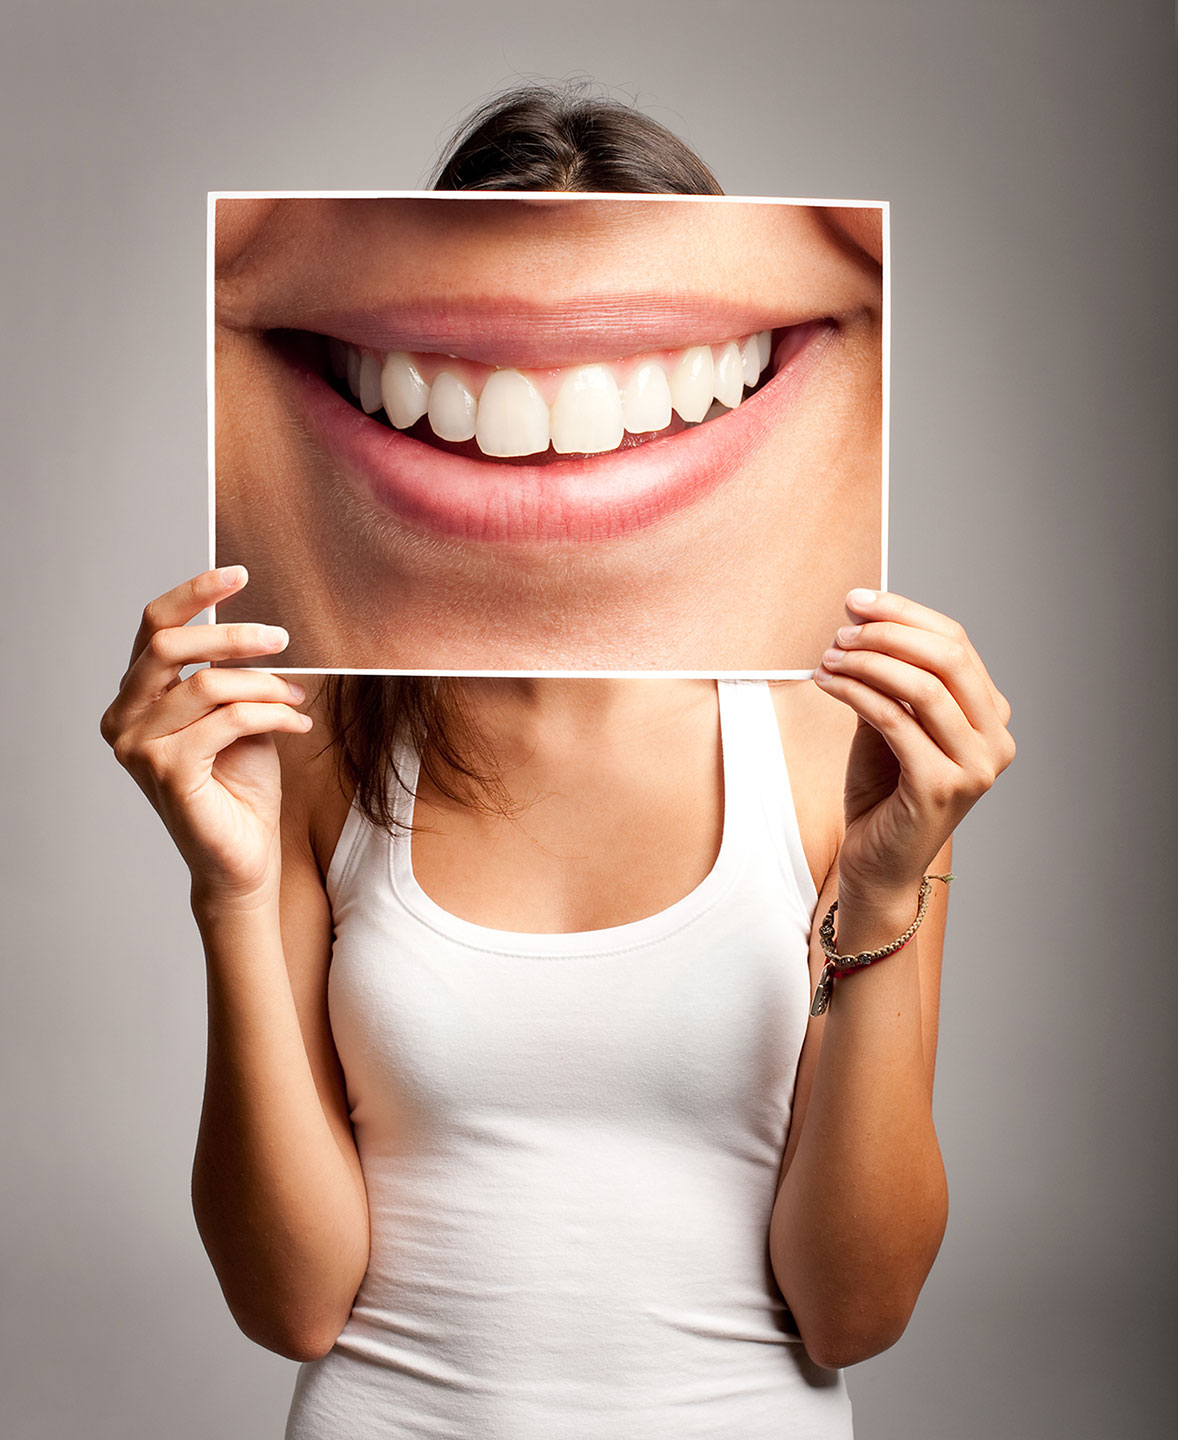 Woman Holds A Beautifully Enlarged Photo Of Her Smile Over Her Face